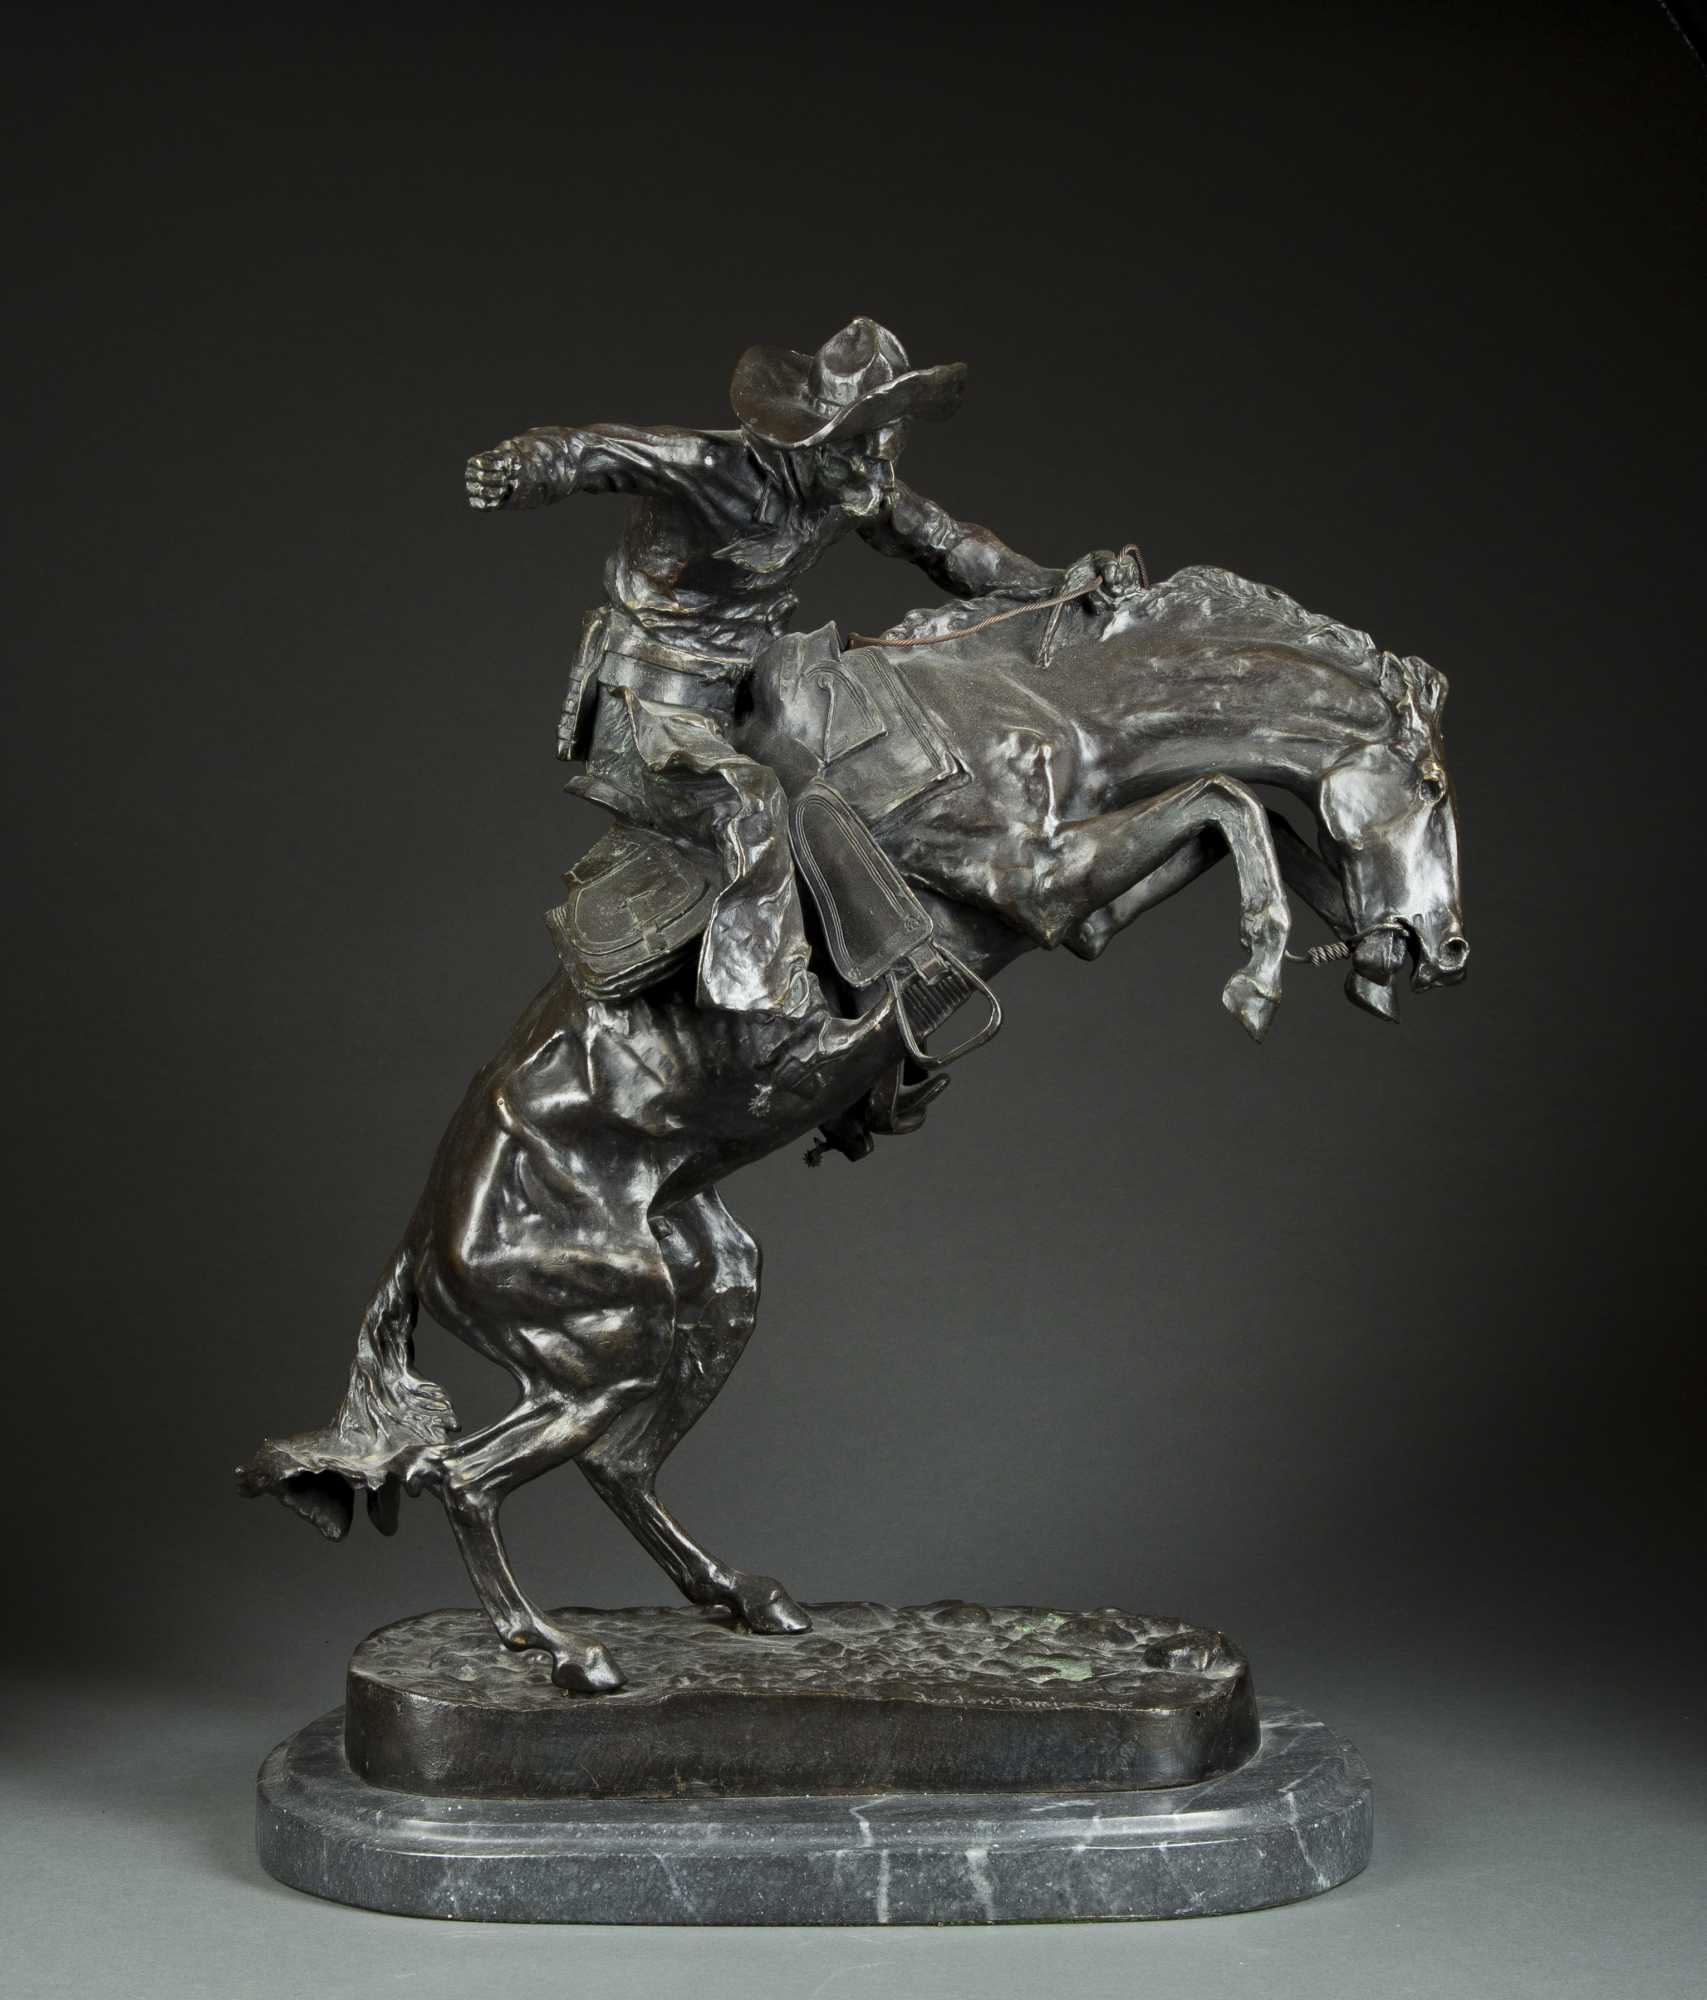 Reproduction Frederic Remington Bronze The Bronco Buster